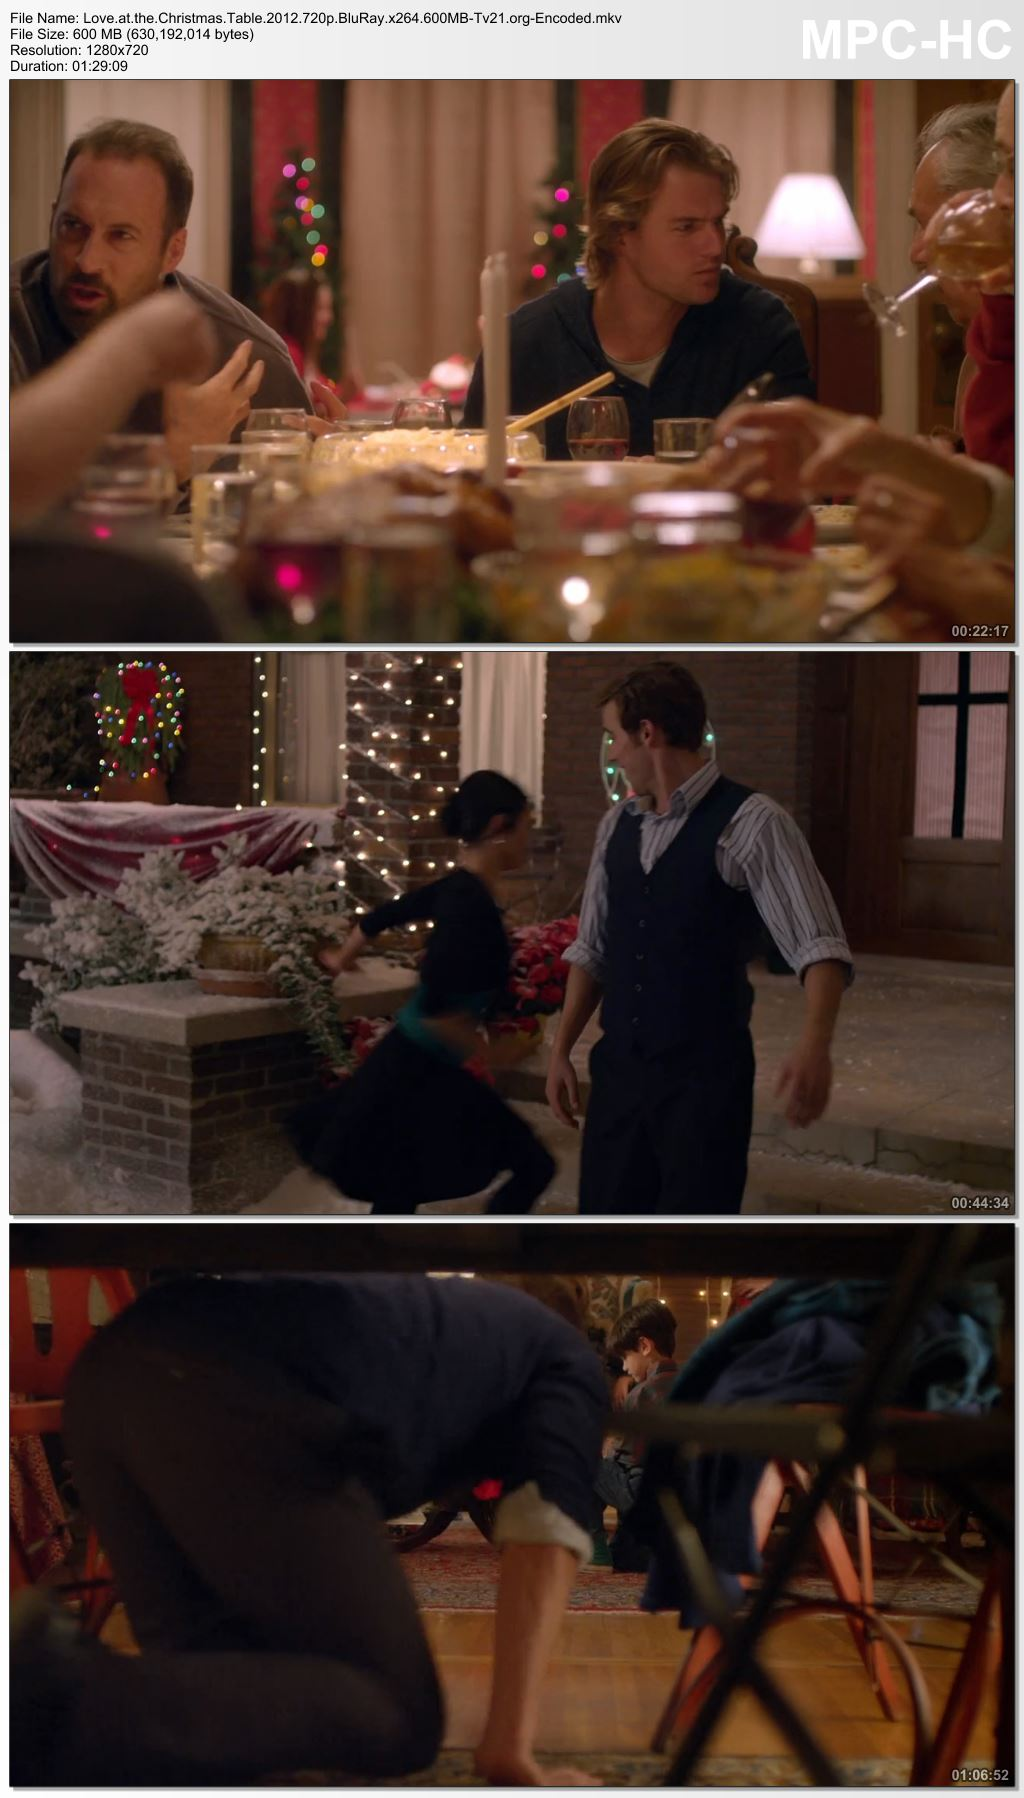 Love At The Christmas Table.Love At The Christmas Table 2012 720p Blu Ray X264 600 Mb